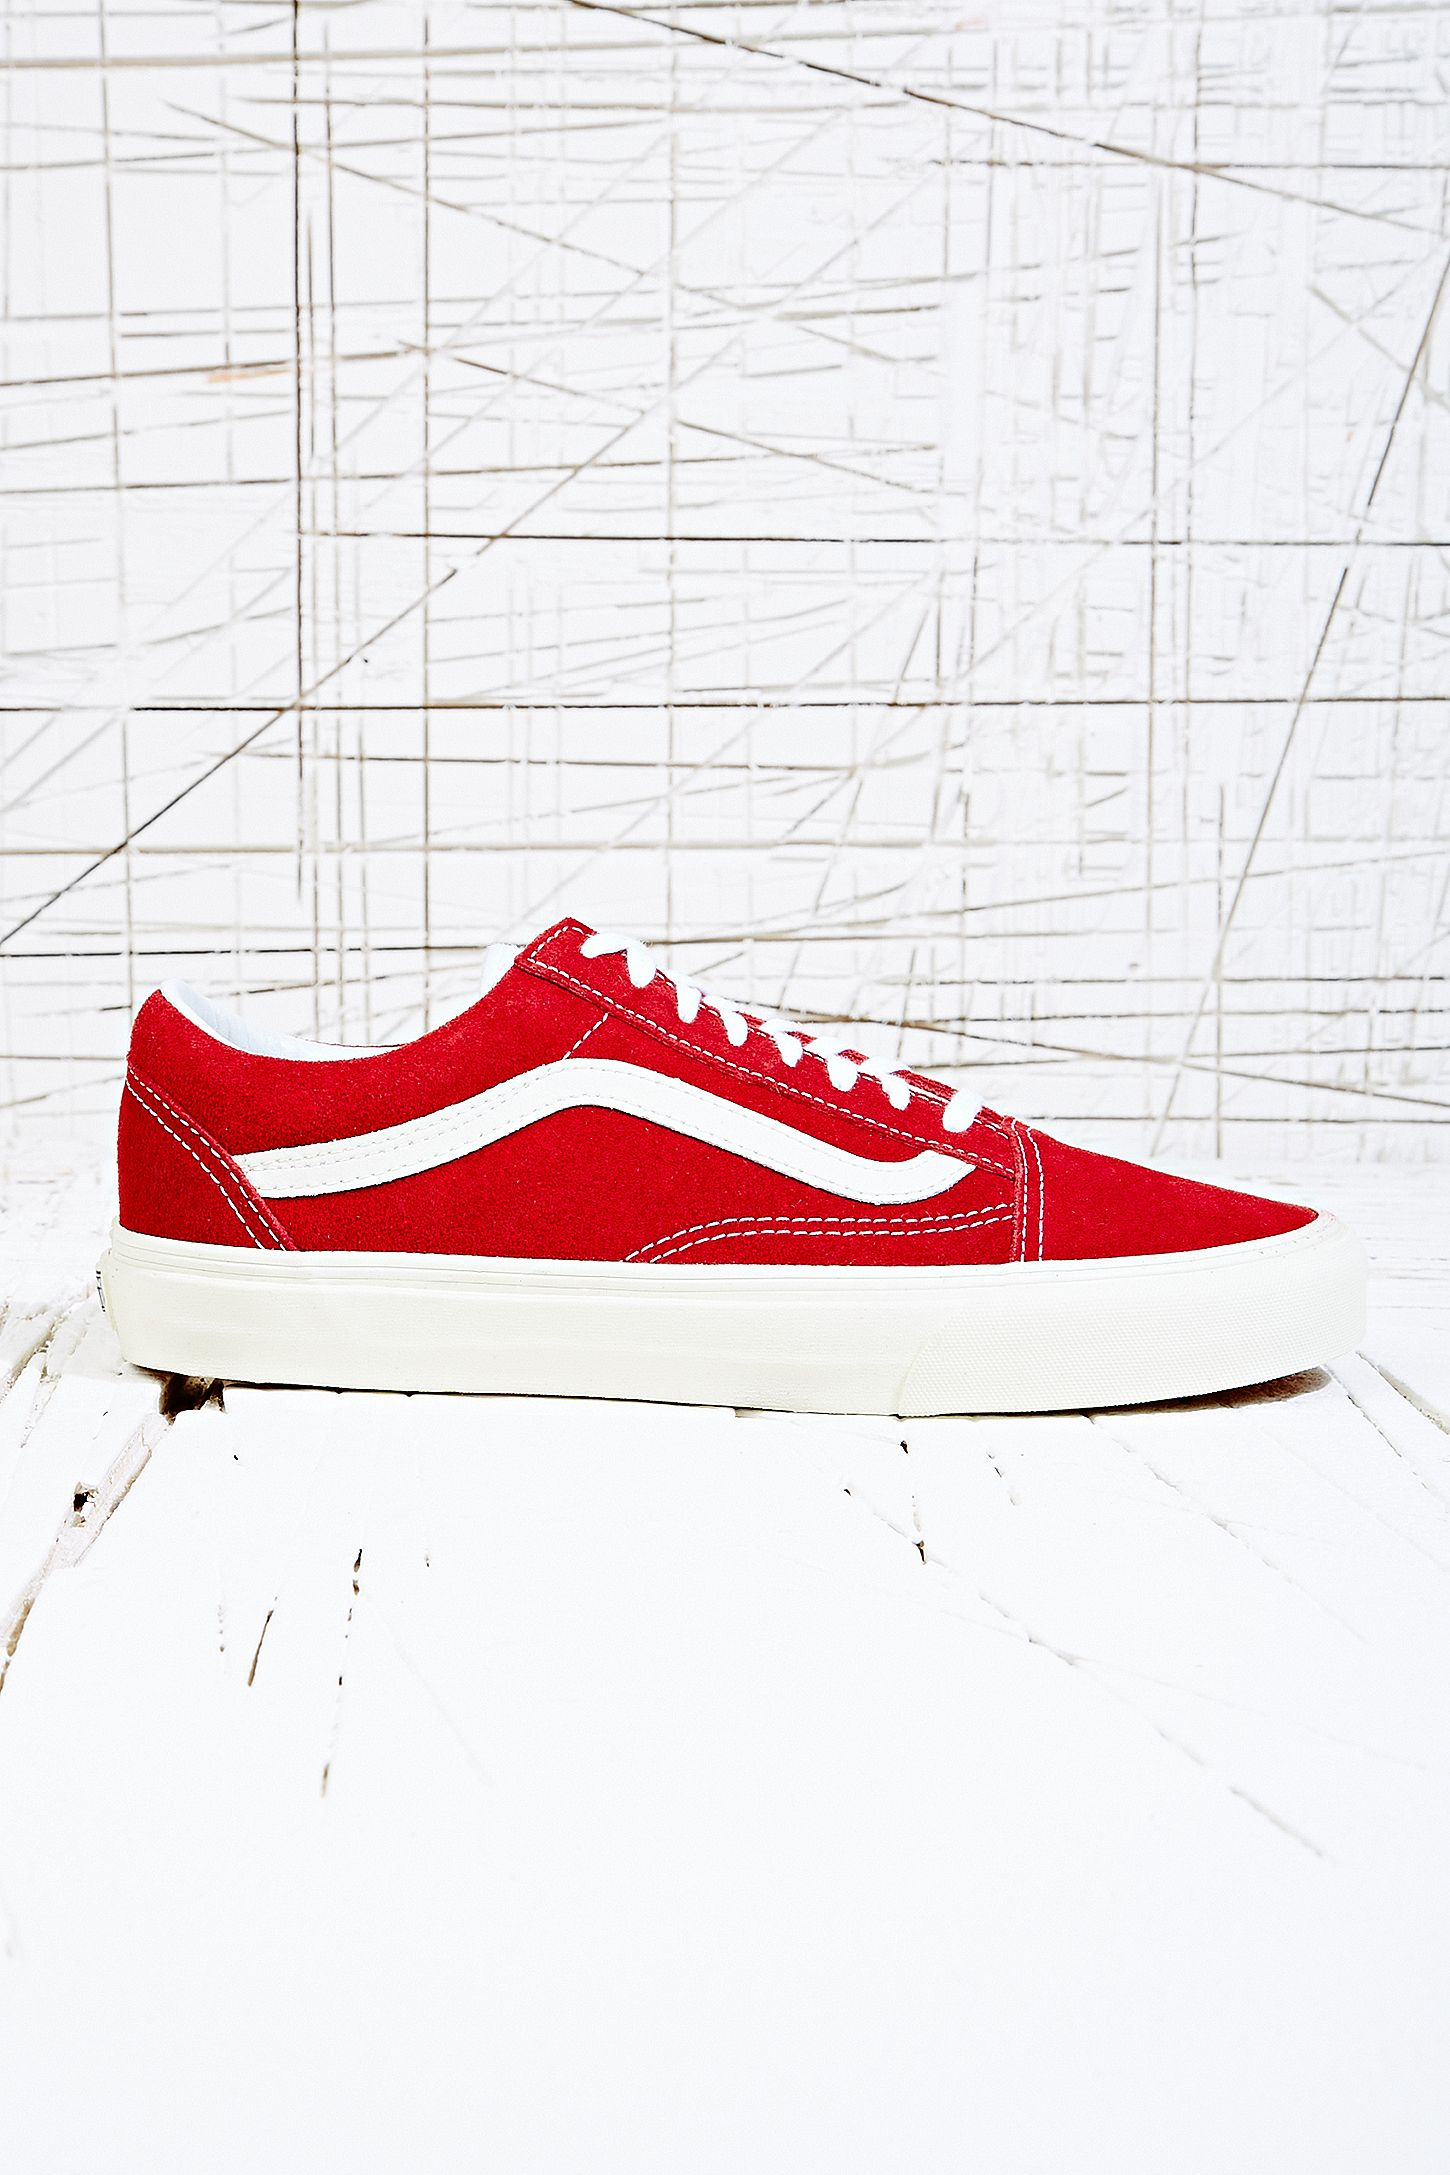 6eb19b7dfa Vans Old Skool Vintage Trainers in Rio Red. Click on image to zoom. Hover  to zoom. Double Tap to Zoom